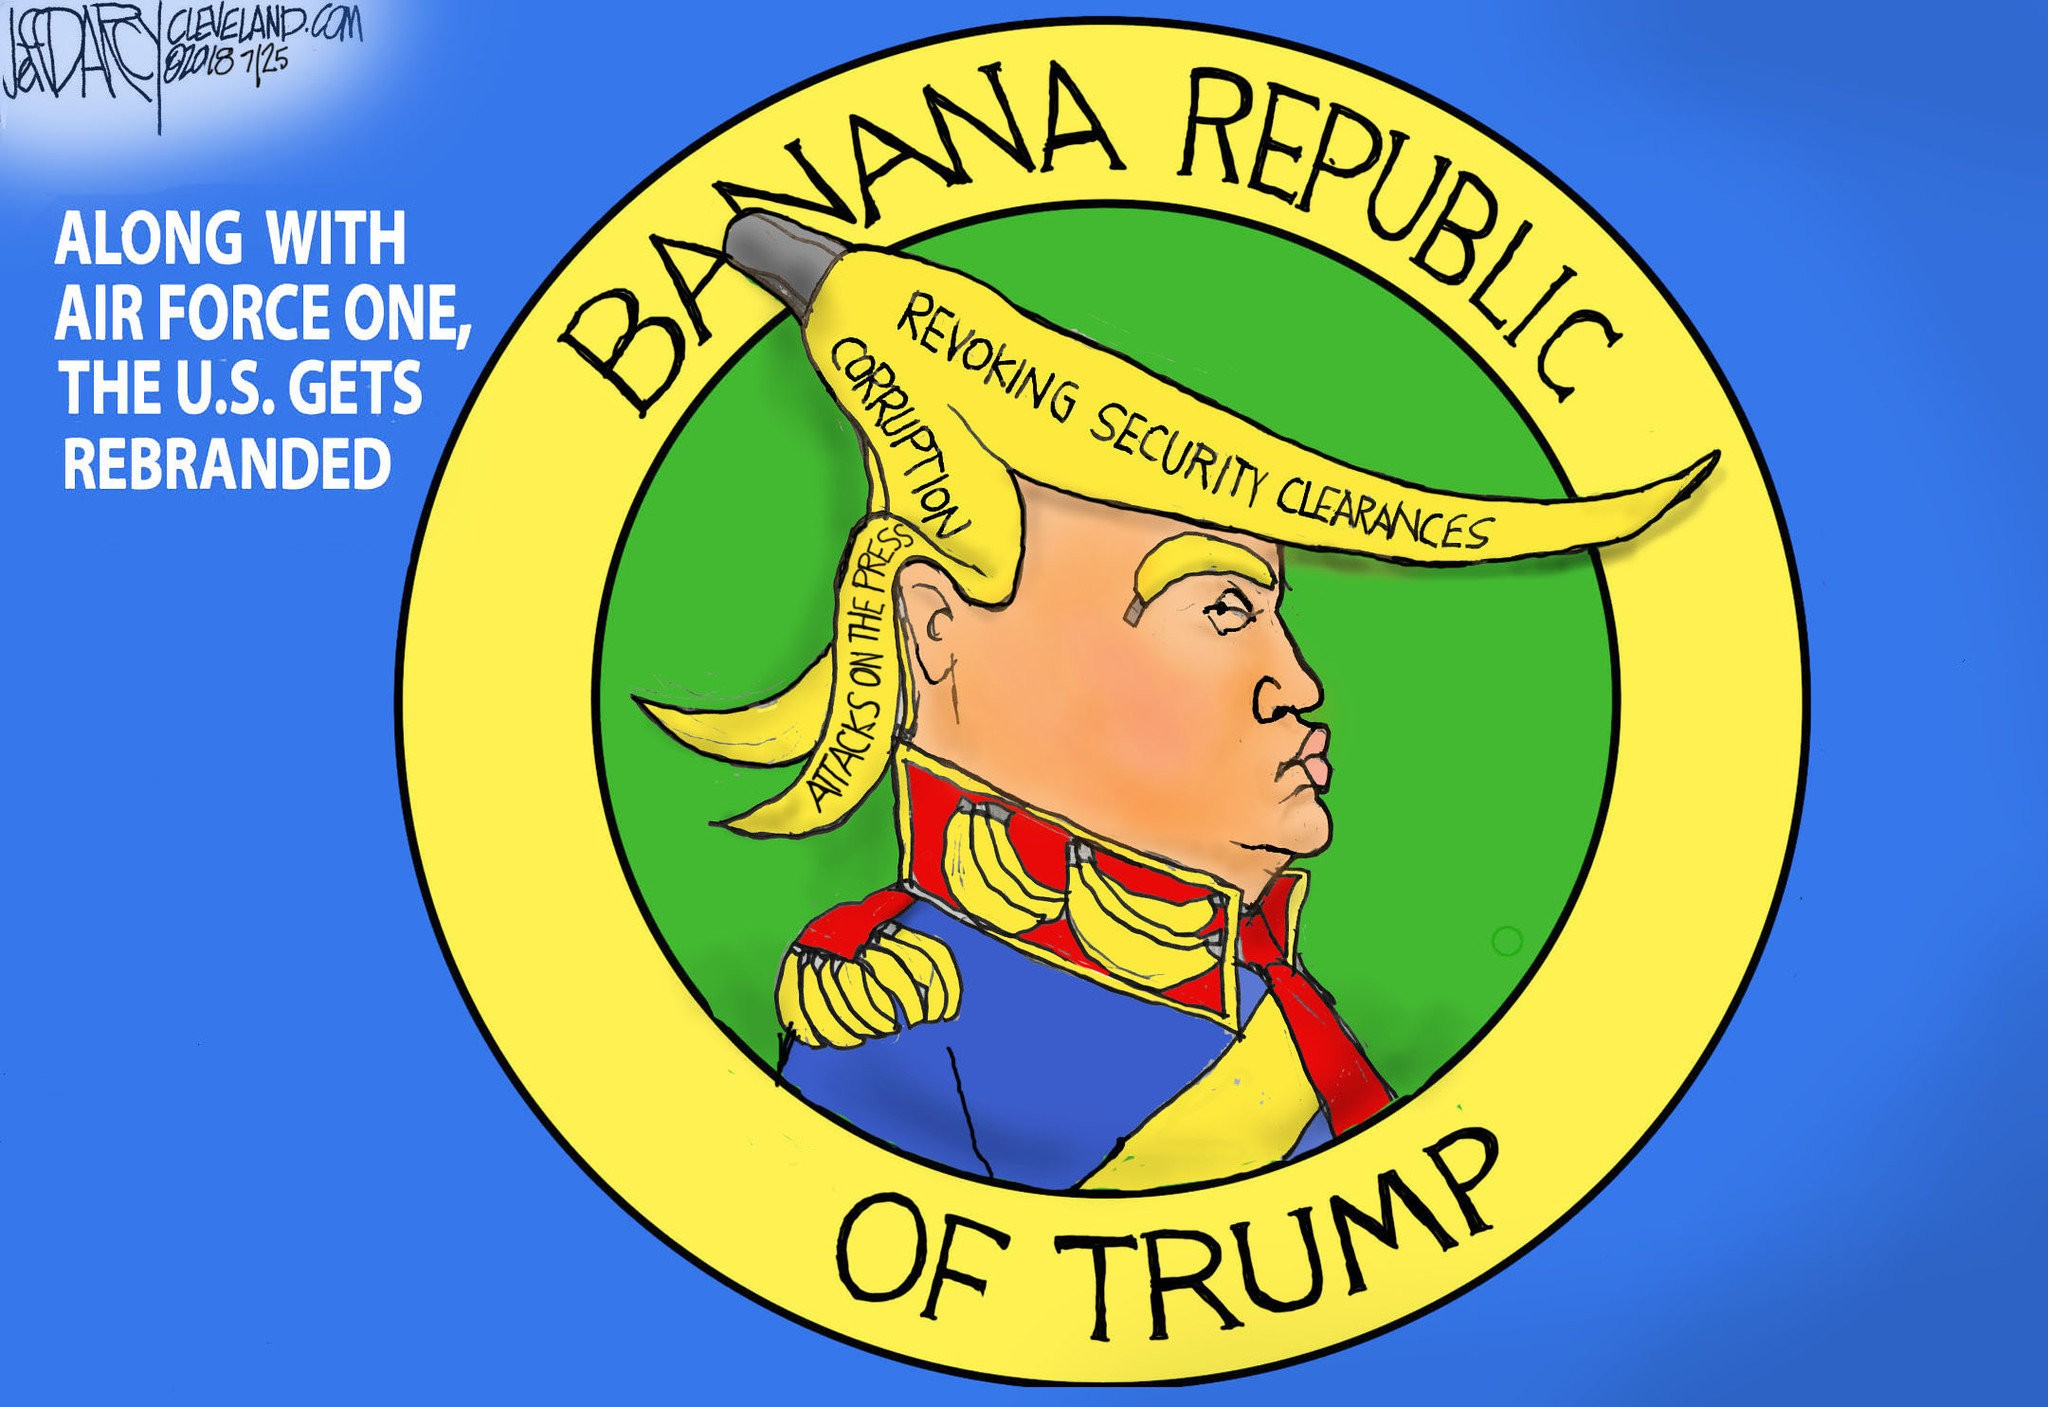 Trump revoking security clearances is bananas: Darcy cartoon ...